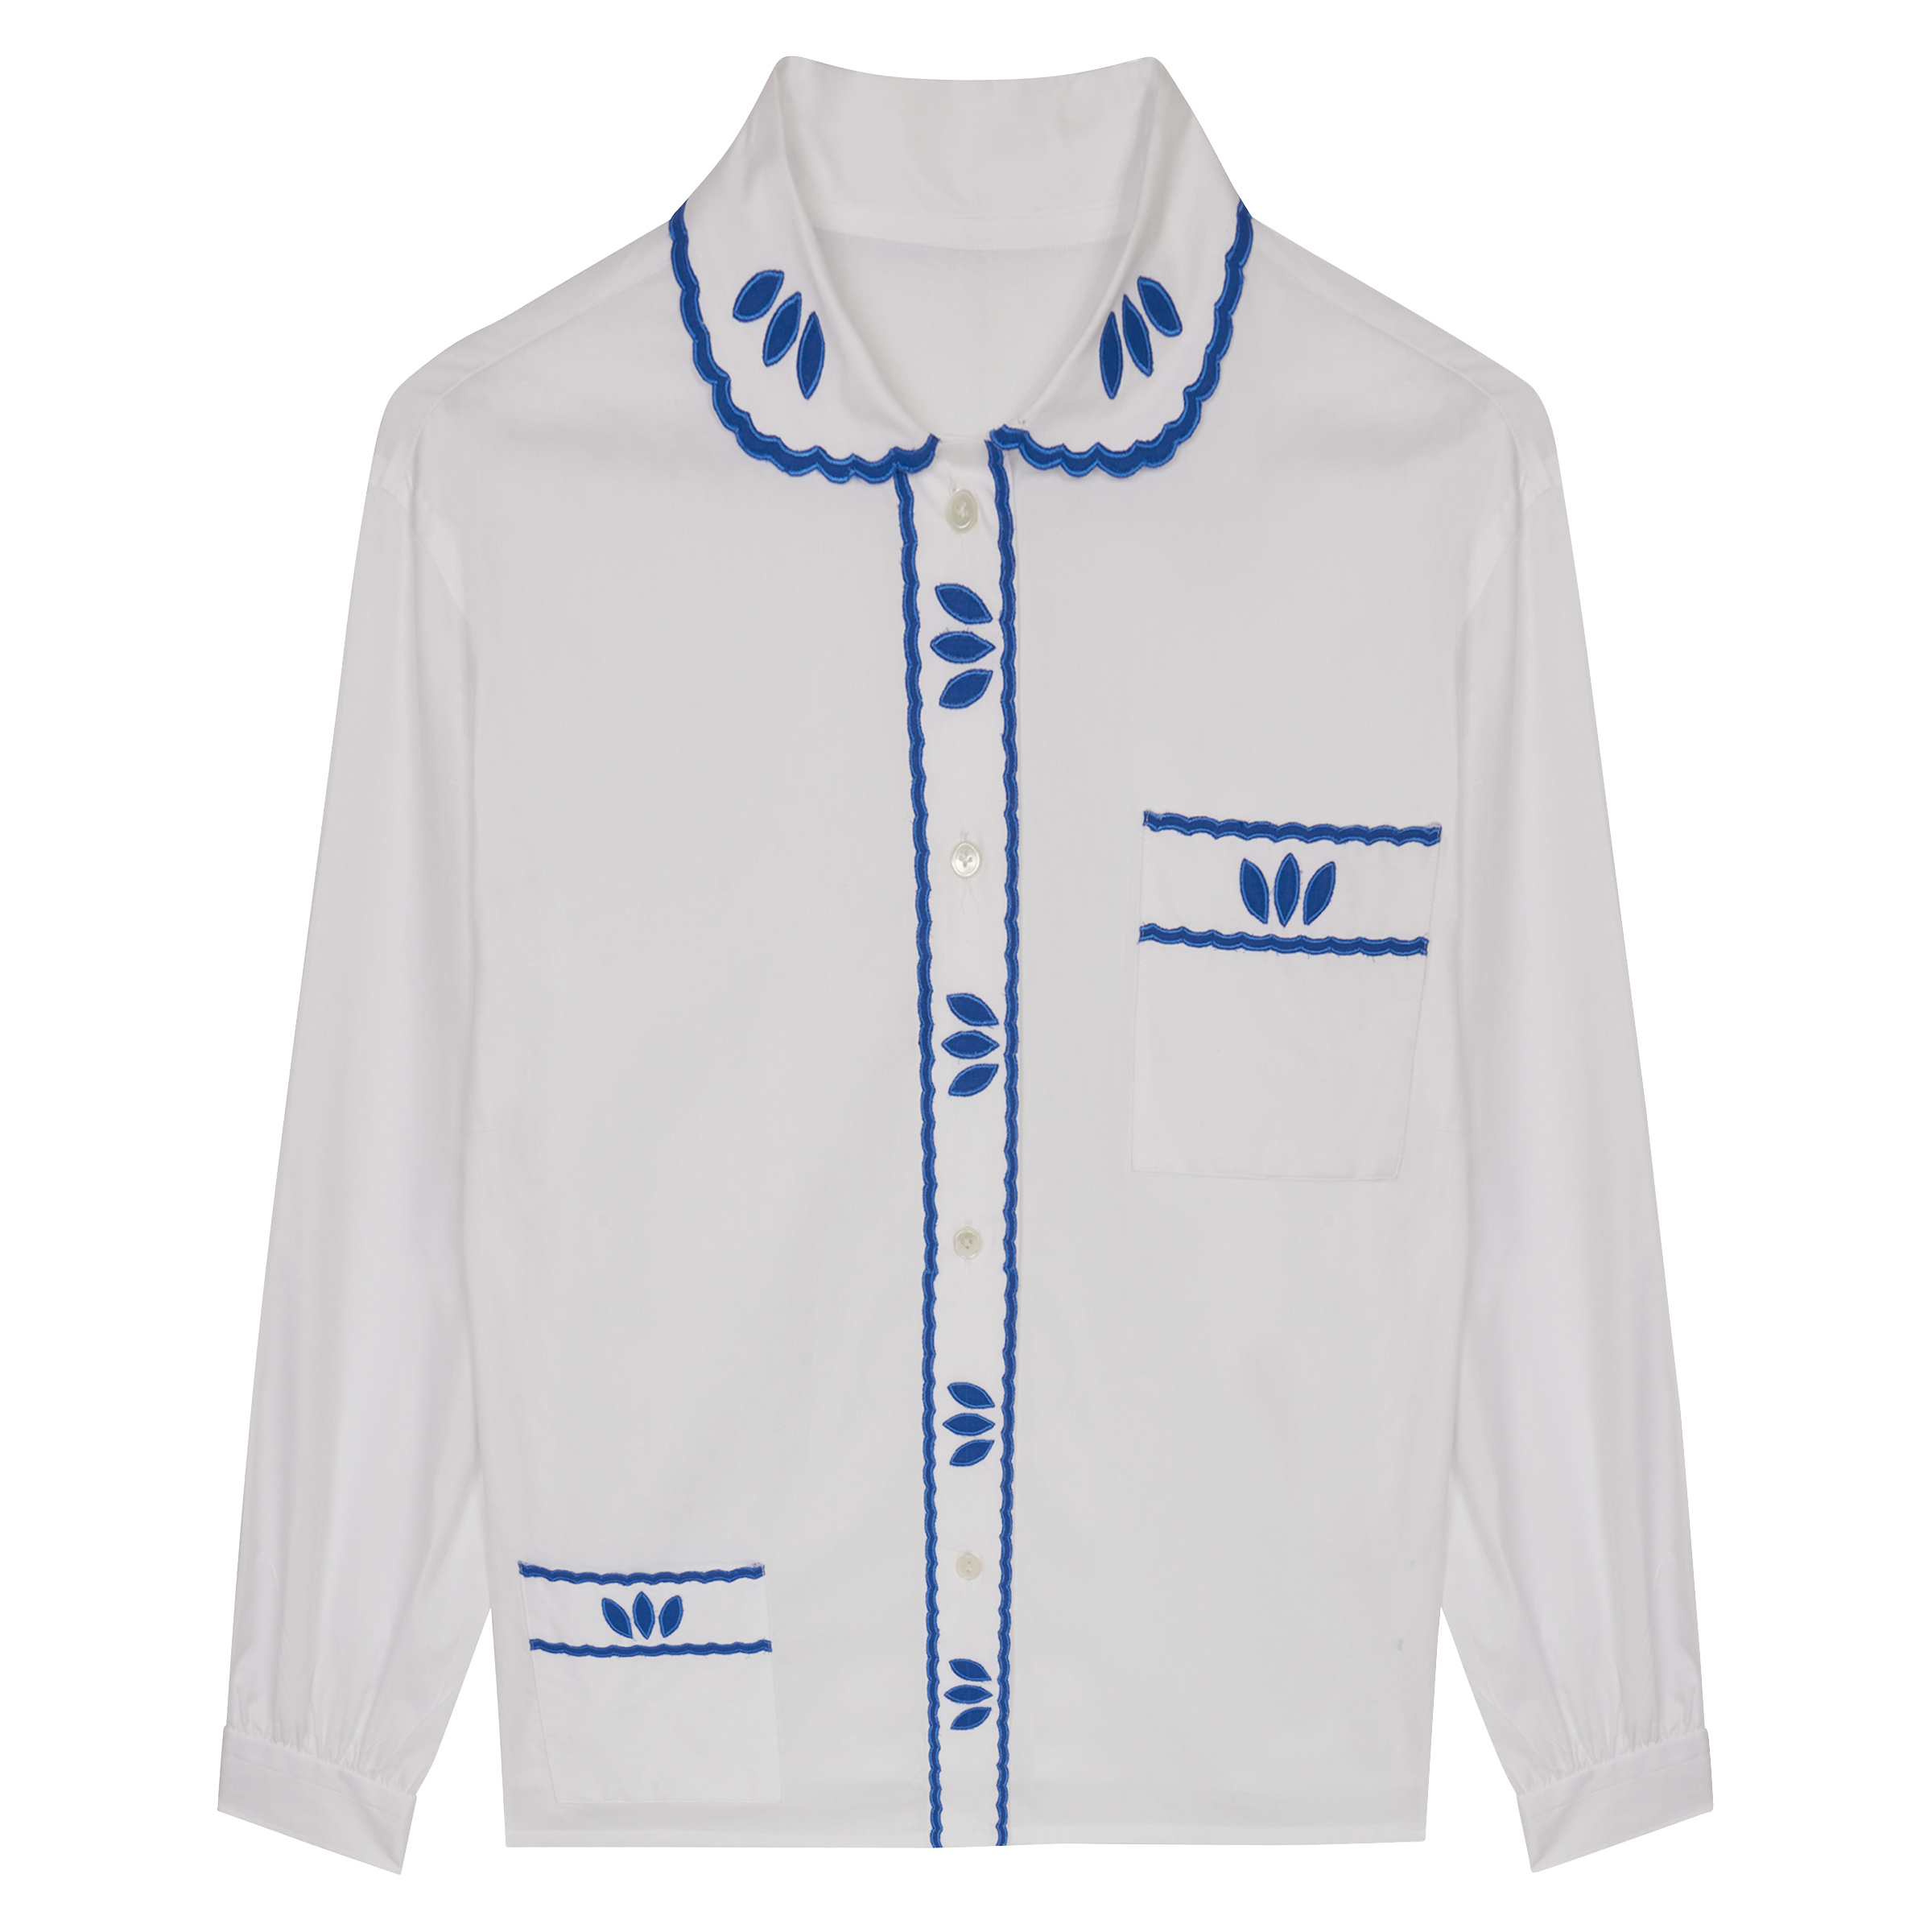 Calce White Cotton with Blue Embroidery Pyjama Shirt